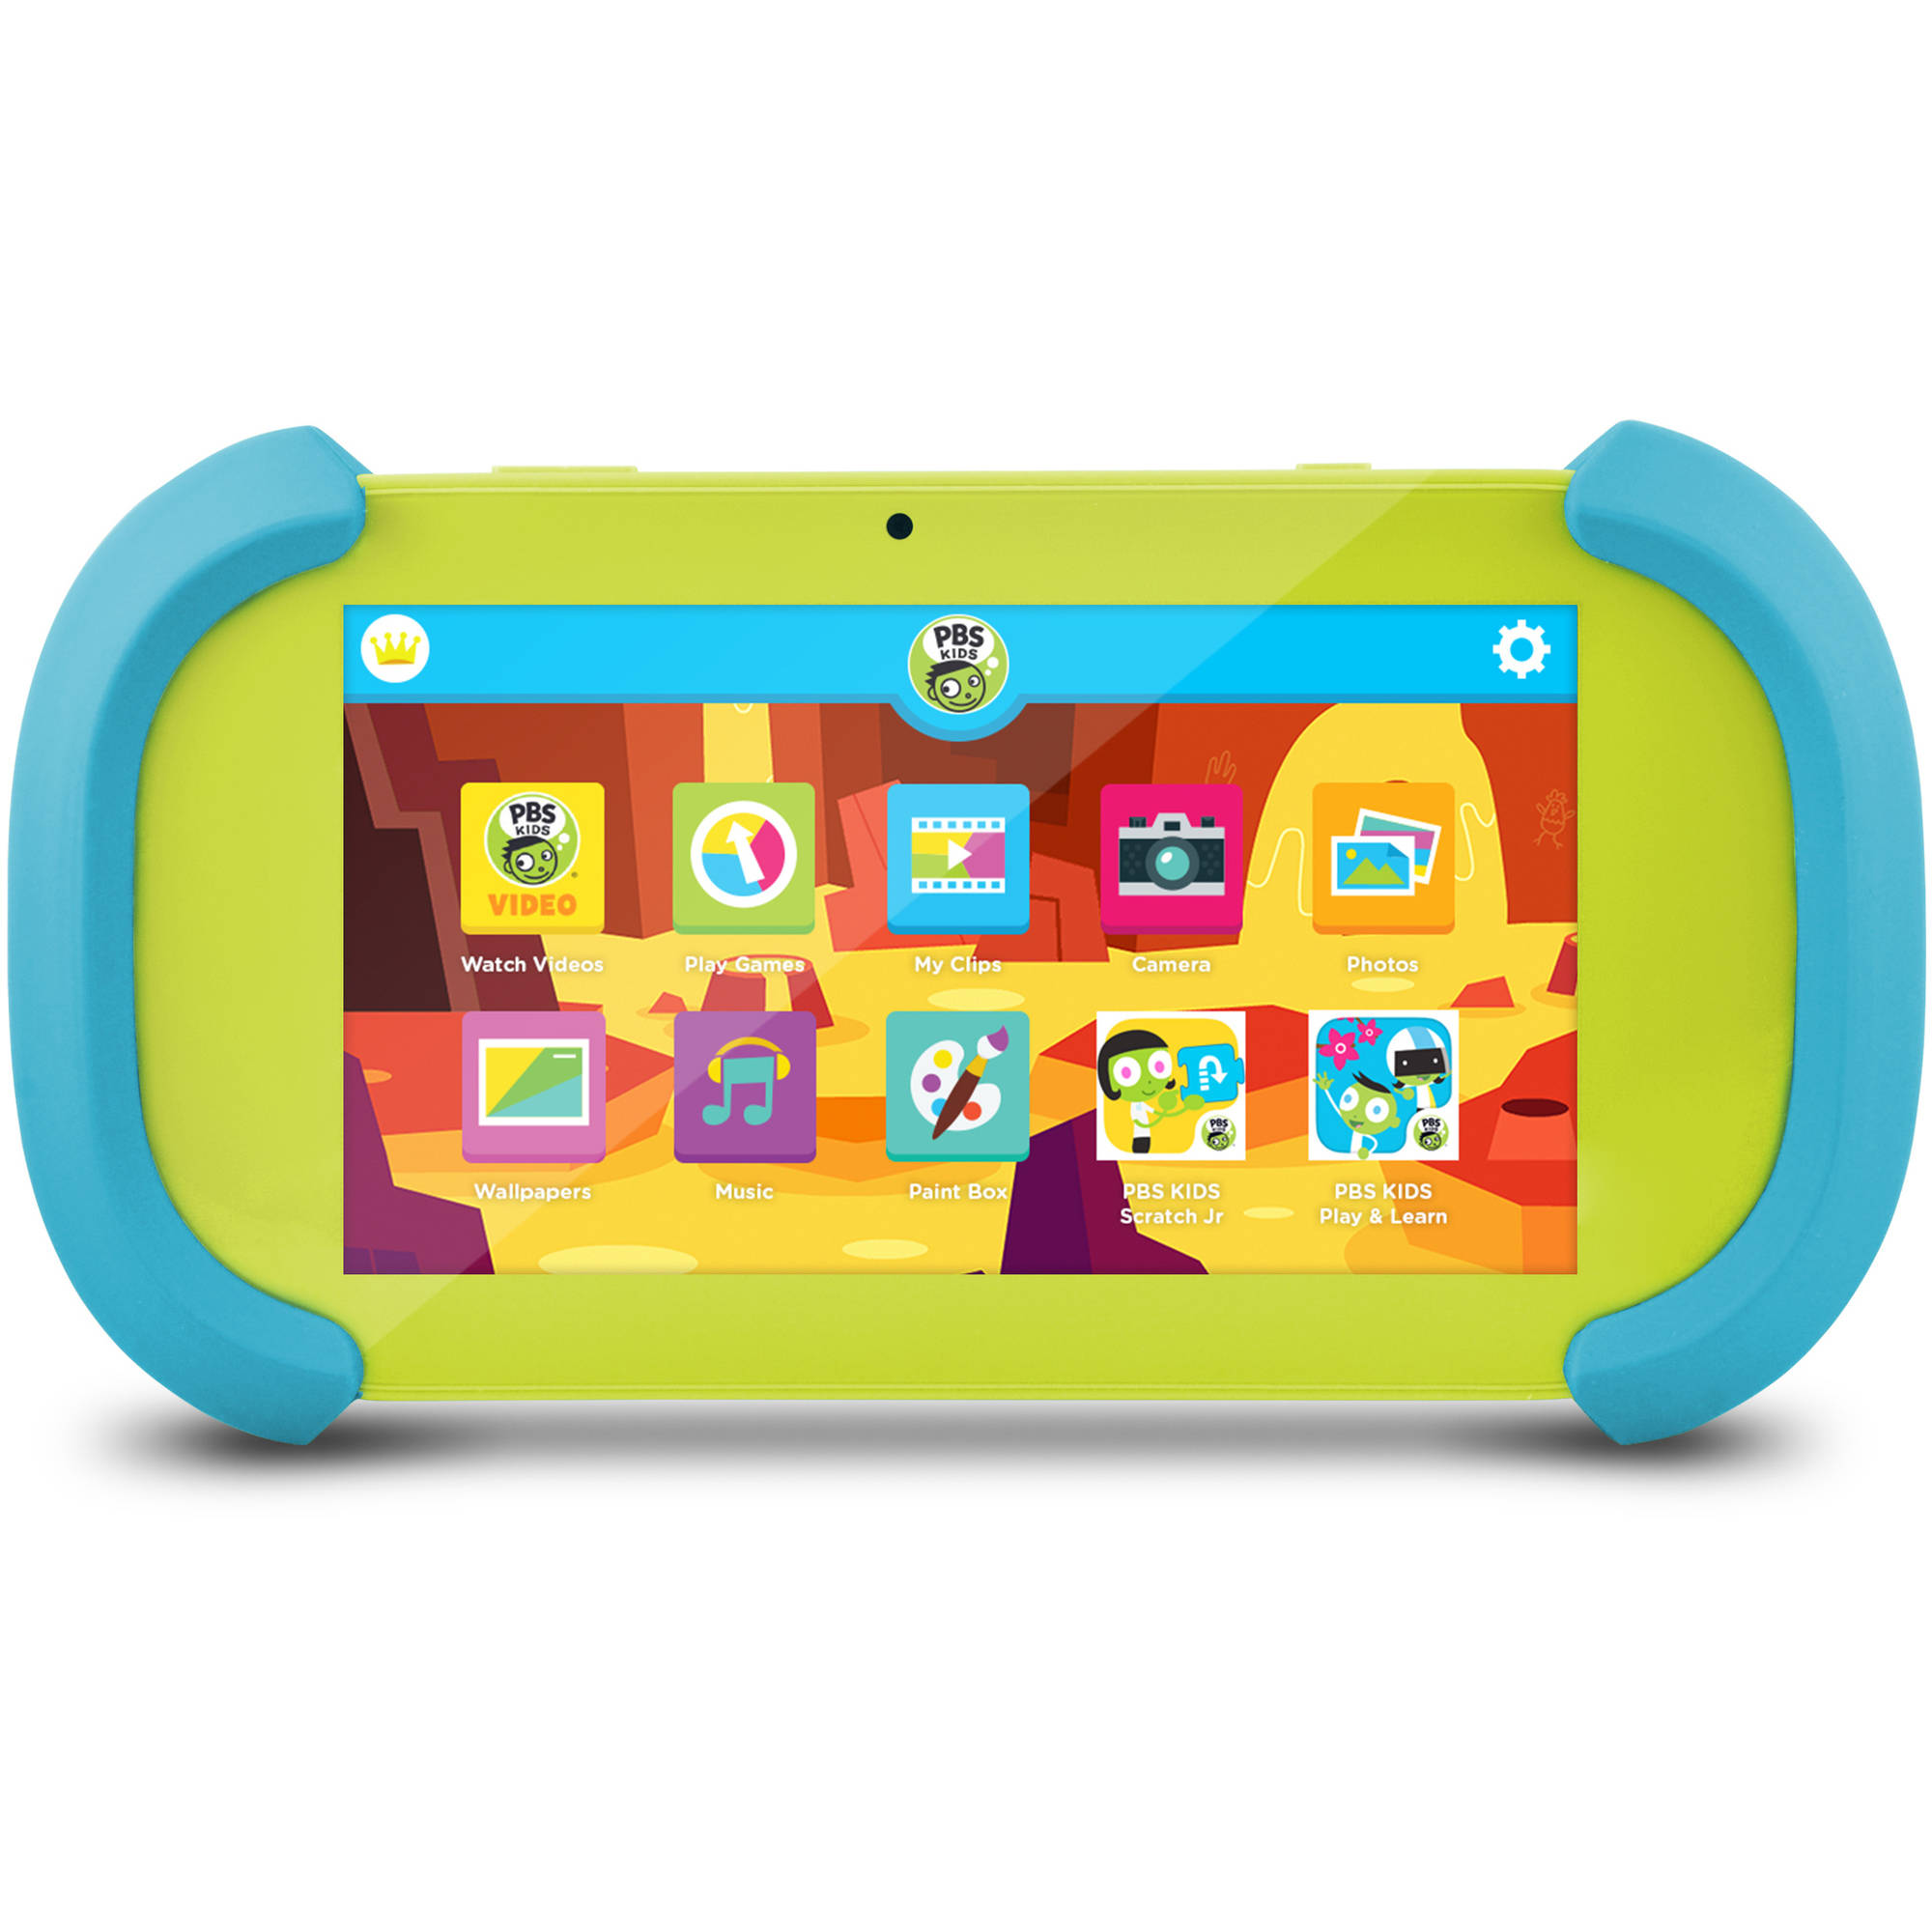 "PBS KIDS Playtime Pad 7"" 16GB Tablet Android 6.0 (Marshmallow)"